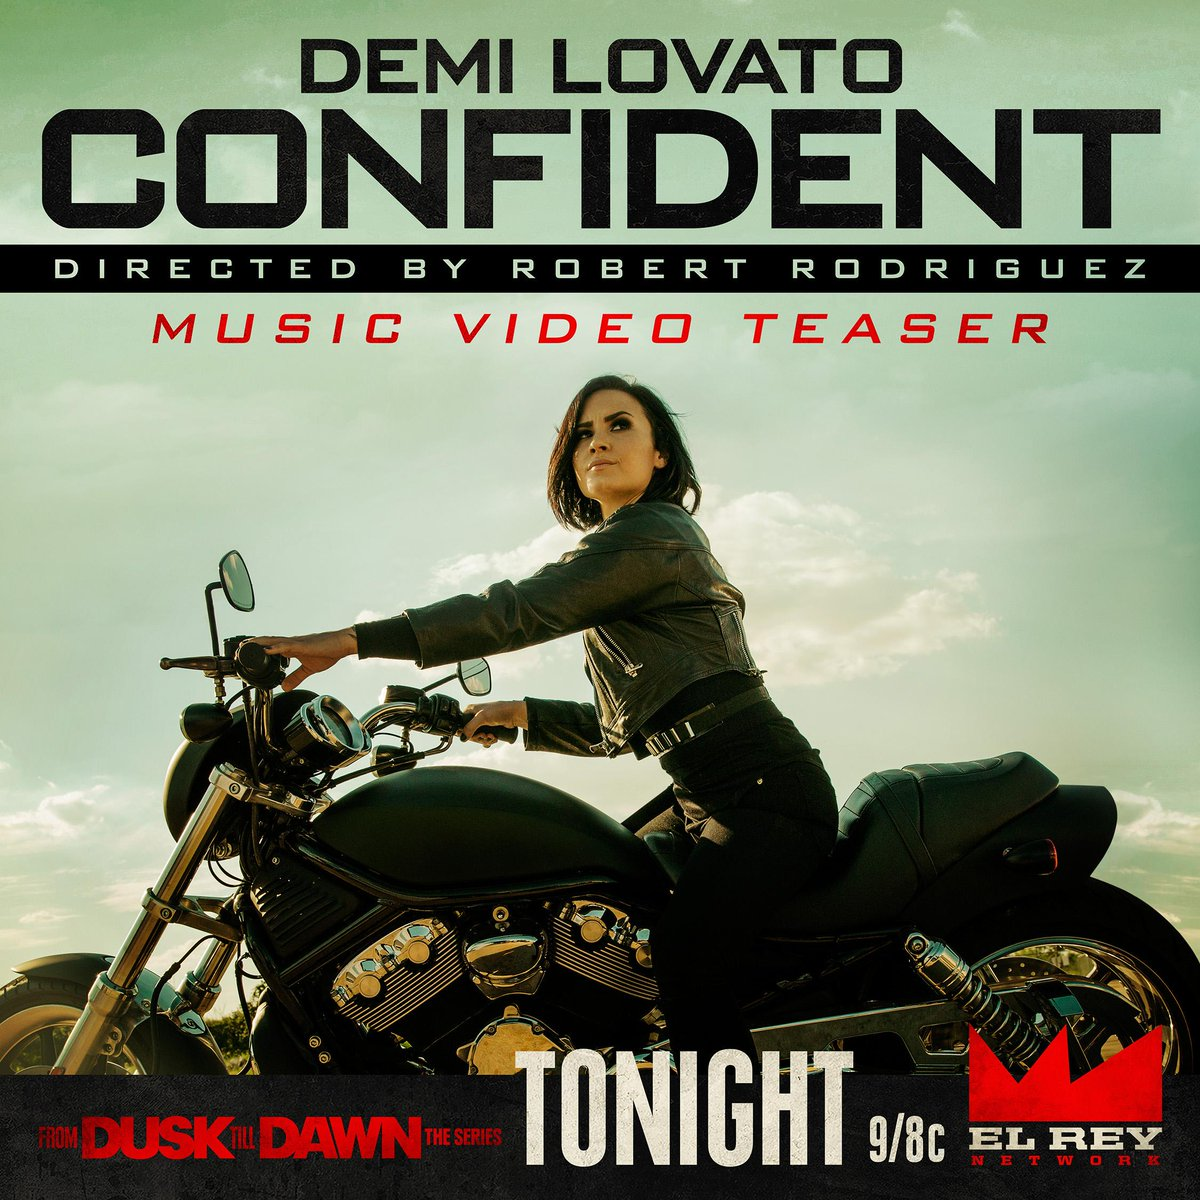 Watch a teaser of my video for @ddlovato's #CONFIDENT tonight during a new EP of @DuskElRey at 9/8c on @ElReyNetwork! http://t.co/FaktADKbJ9